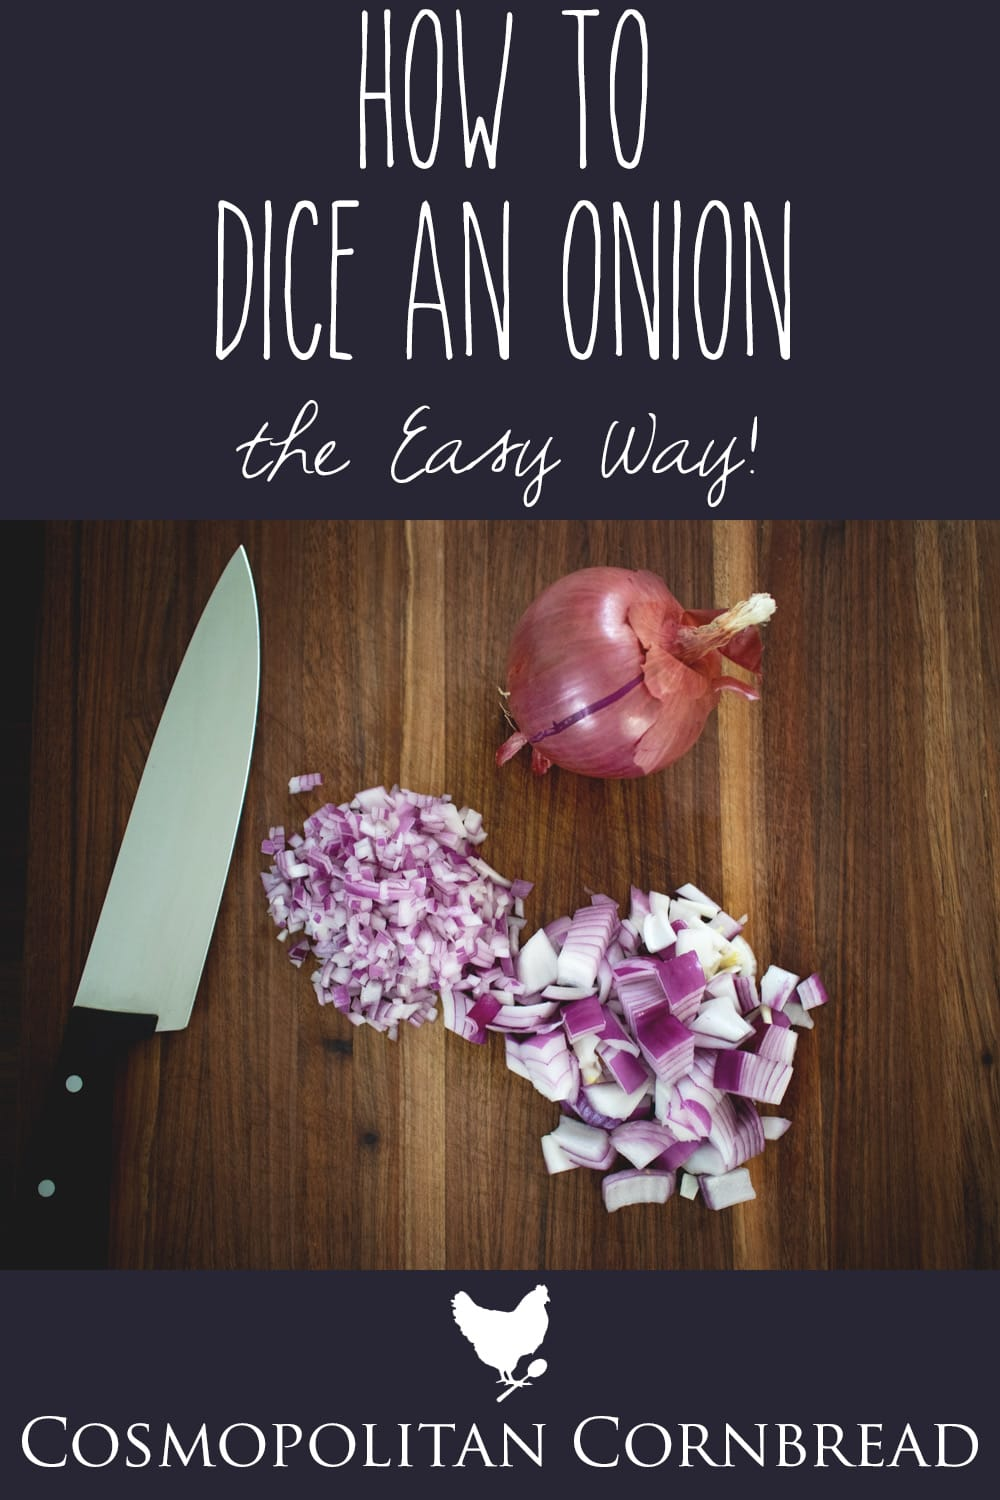 How to Dice an Onion the Easy Way